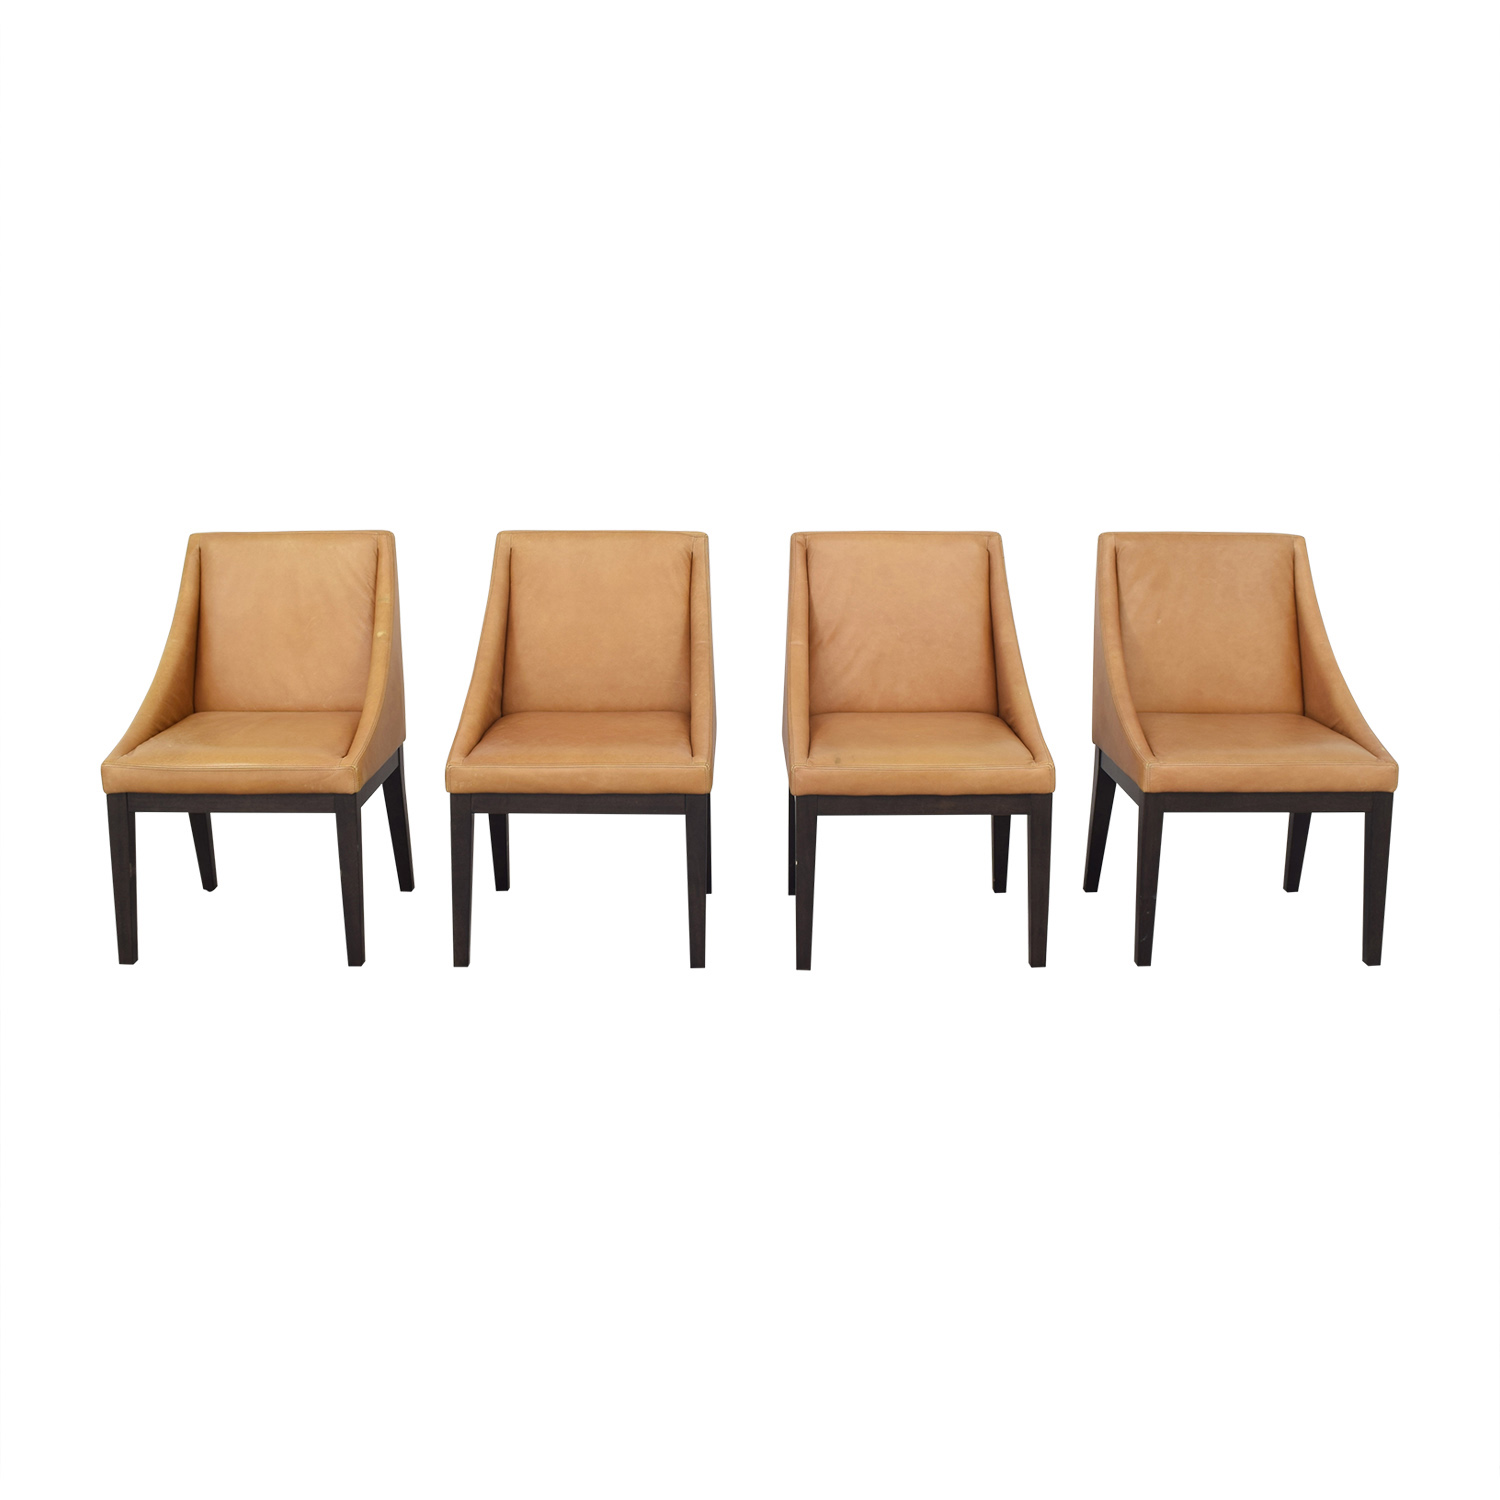 West Elm West Elm Curved Leather Chairs nj